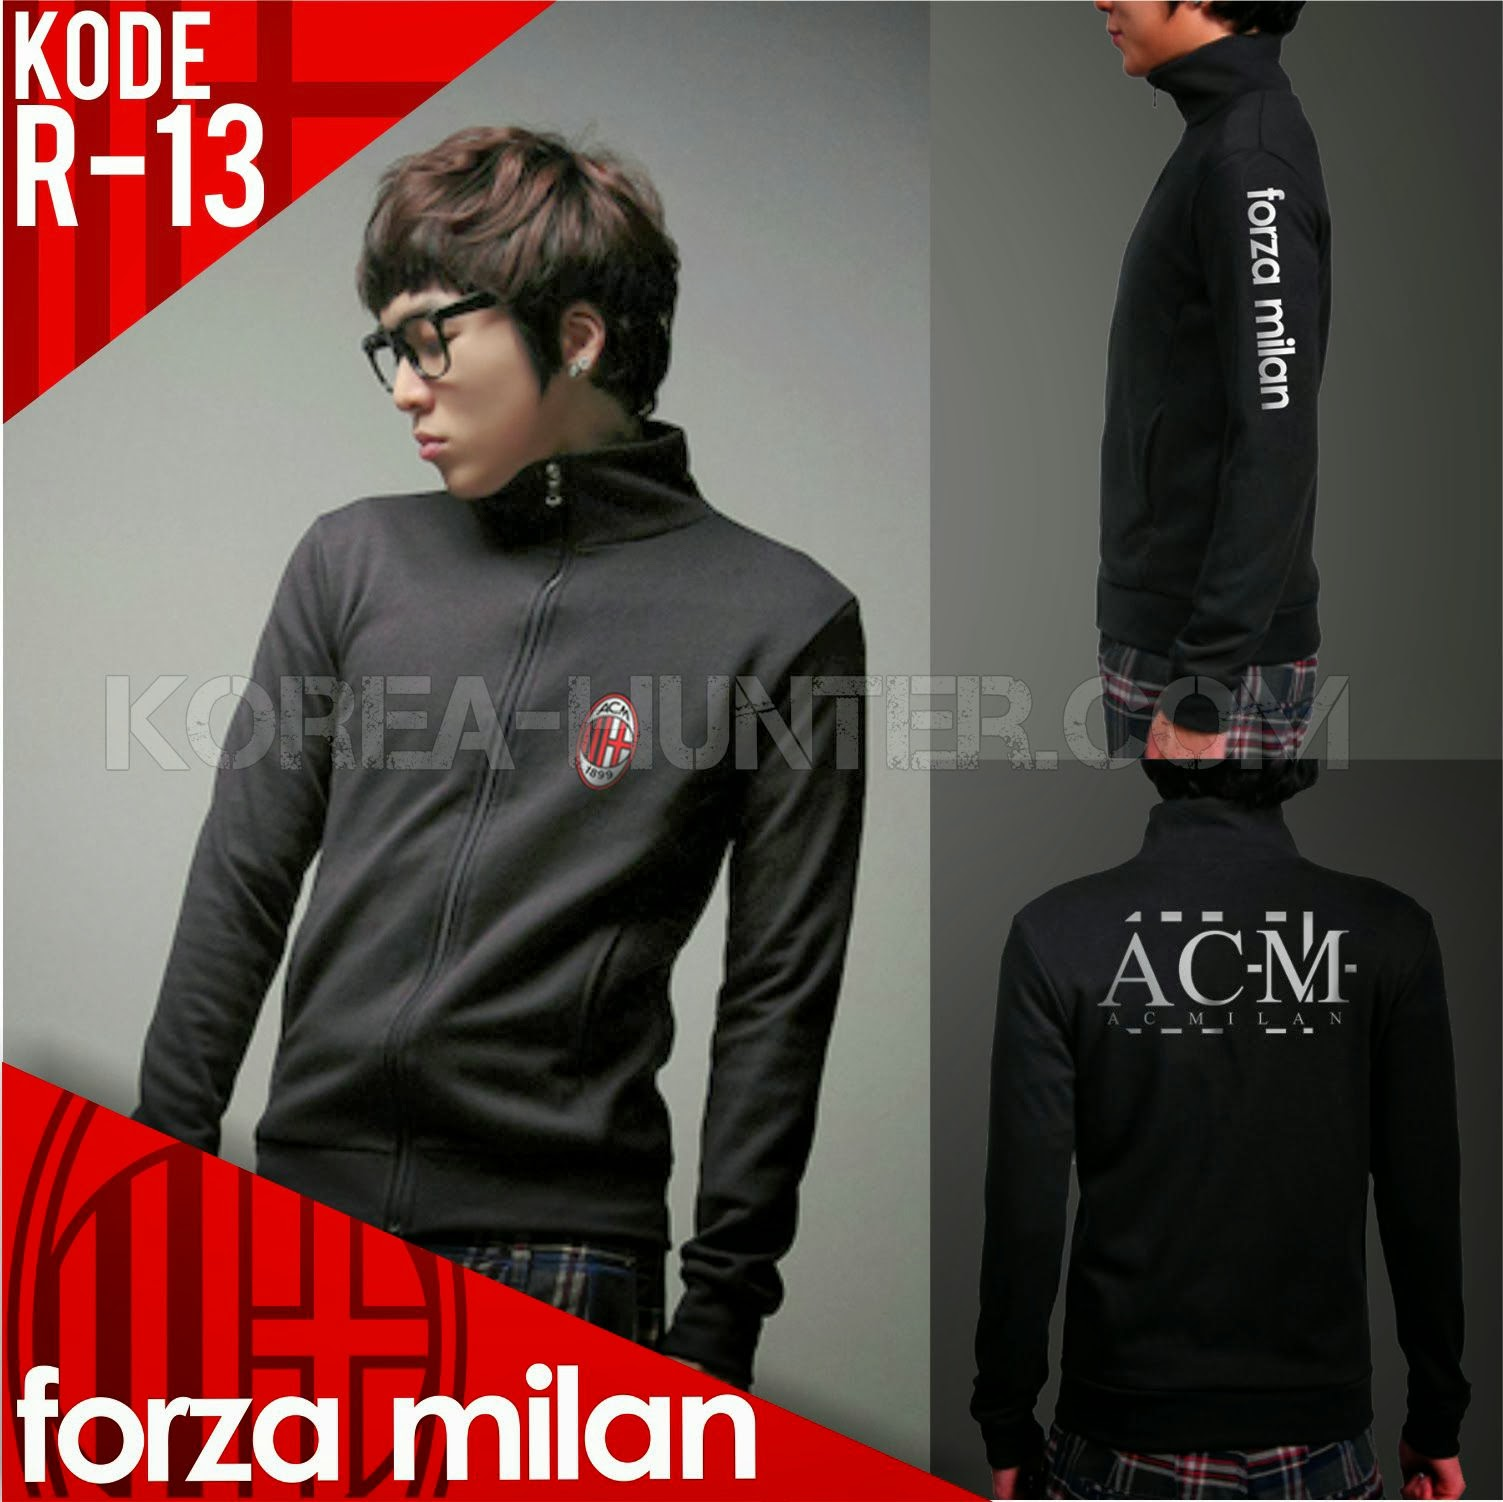 KOREA-HUNTER.com jual murah Soccer Club Jacket - Ac Milan | kaos crows zero tfoa | kemeja national geographic | tas denim korean style blazer